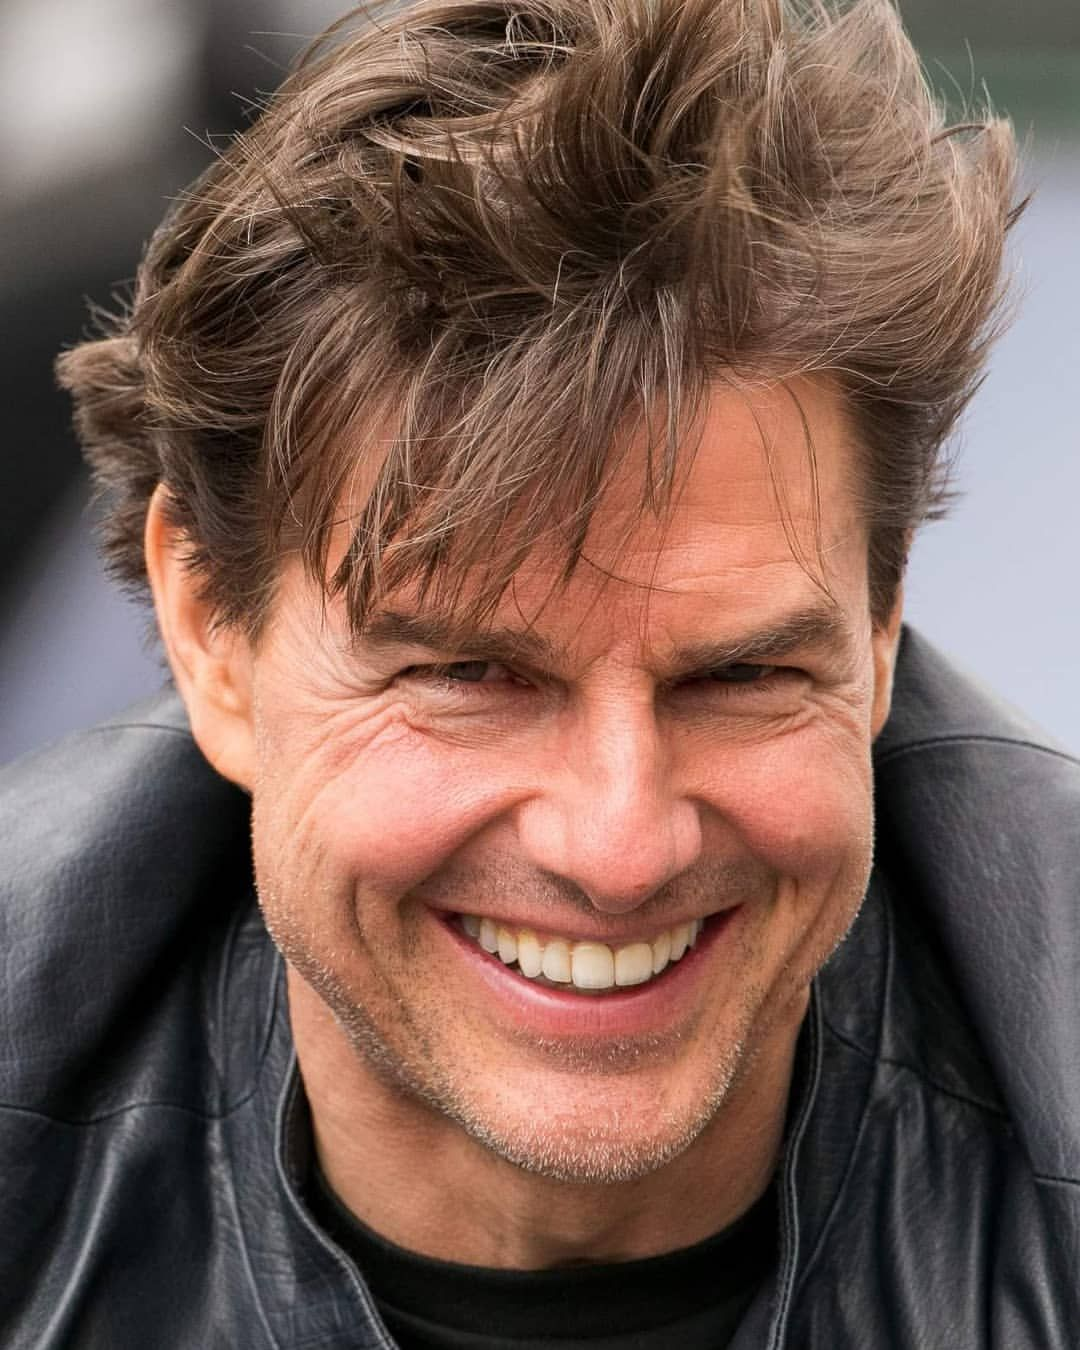 Tom Cruise movies list, Net worth, biography, wife ...